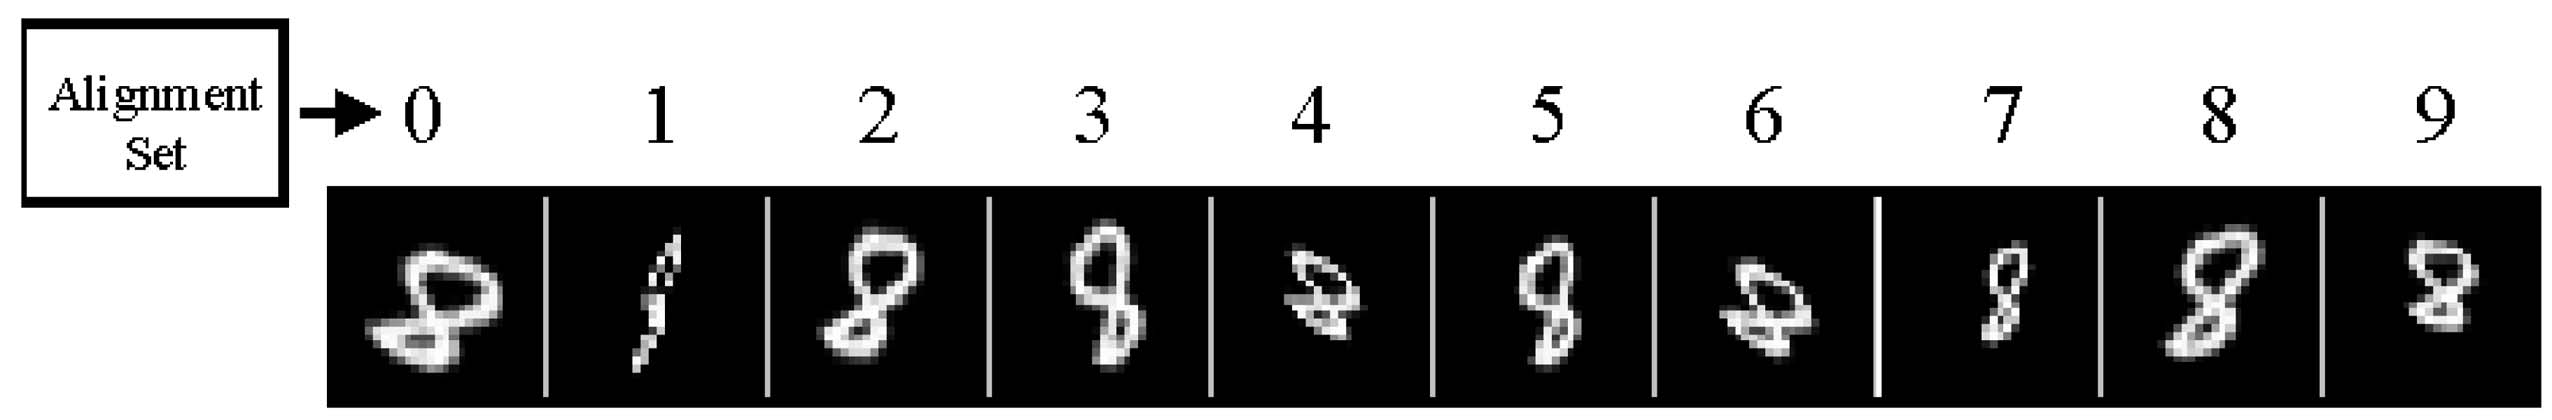 242 IEEE TRANSACTIONS ON PATTERN ANALYSIS AND MACHINE INTELLIGENCE, VOL. 28, NO. 2, FEBRUARY 2006 Fig. 6. A set of latent image estimates for an observed 8 image.